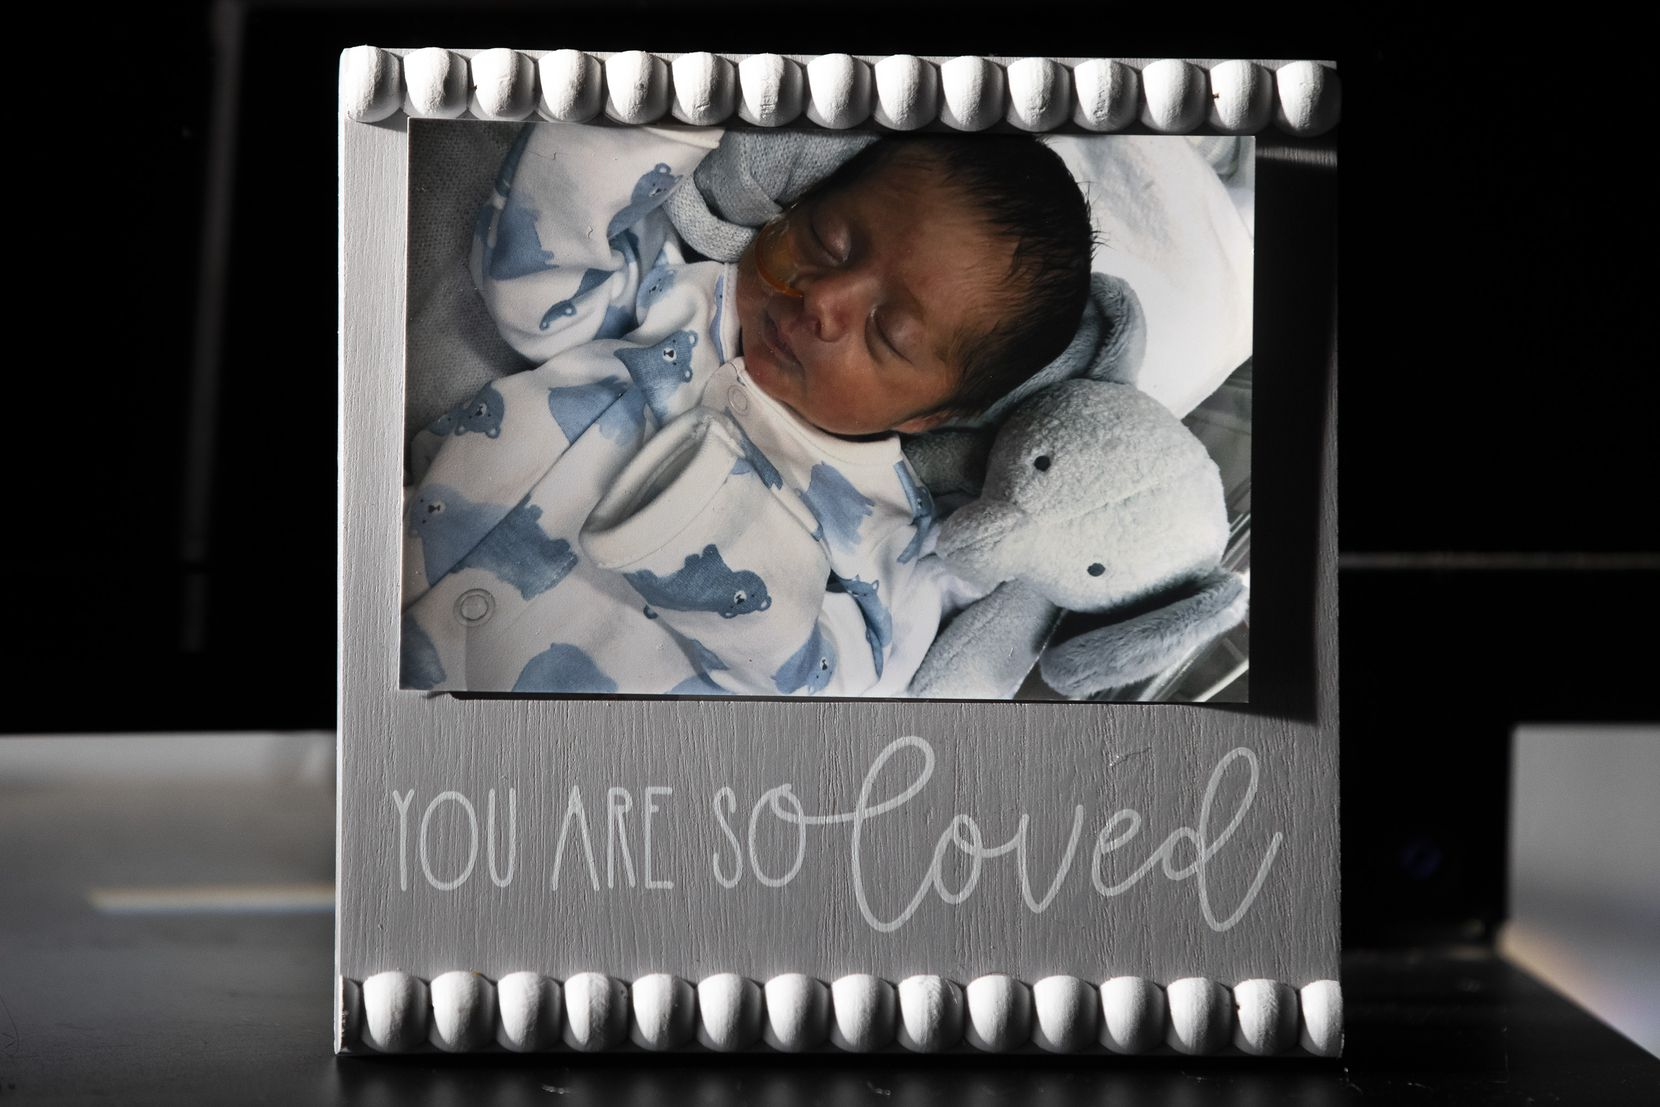 The Palacios family placed this photo of Isaiah in Nely's hospital room in January in hopes that it would be the first thing she saw when she recovered sufficiently to come off the ventilator that was providing mechanical support for her badly damaged lungs.